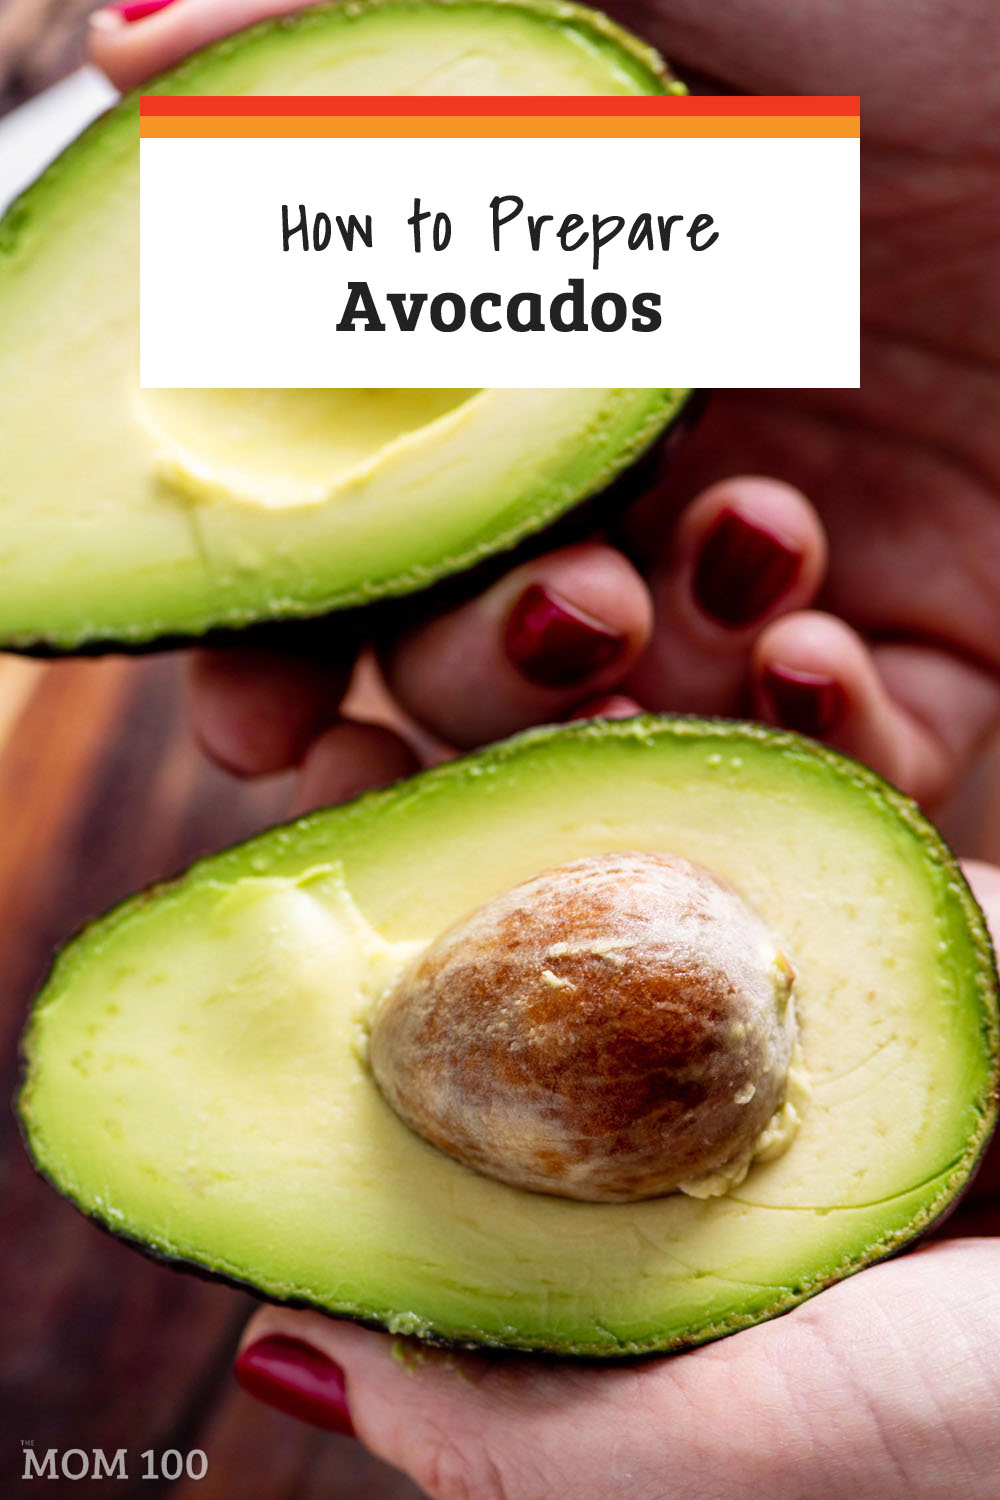 How to Prepare Avocados: Everything you need to know abut buying, storing, ripening and eating avocados!